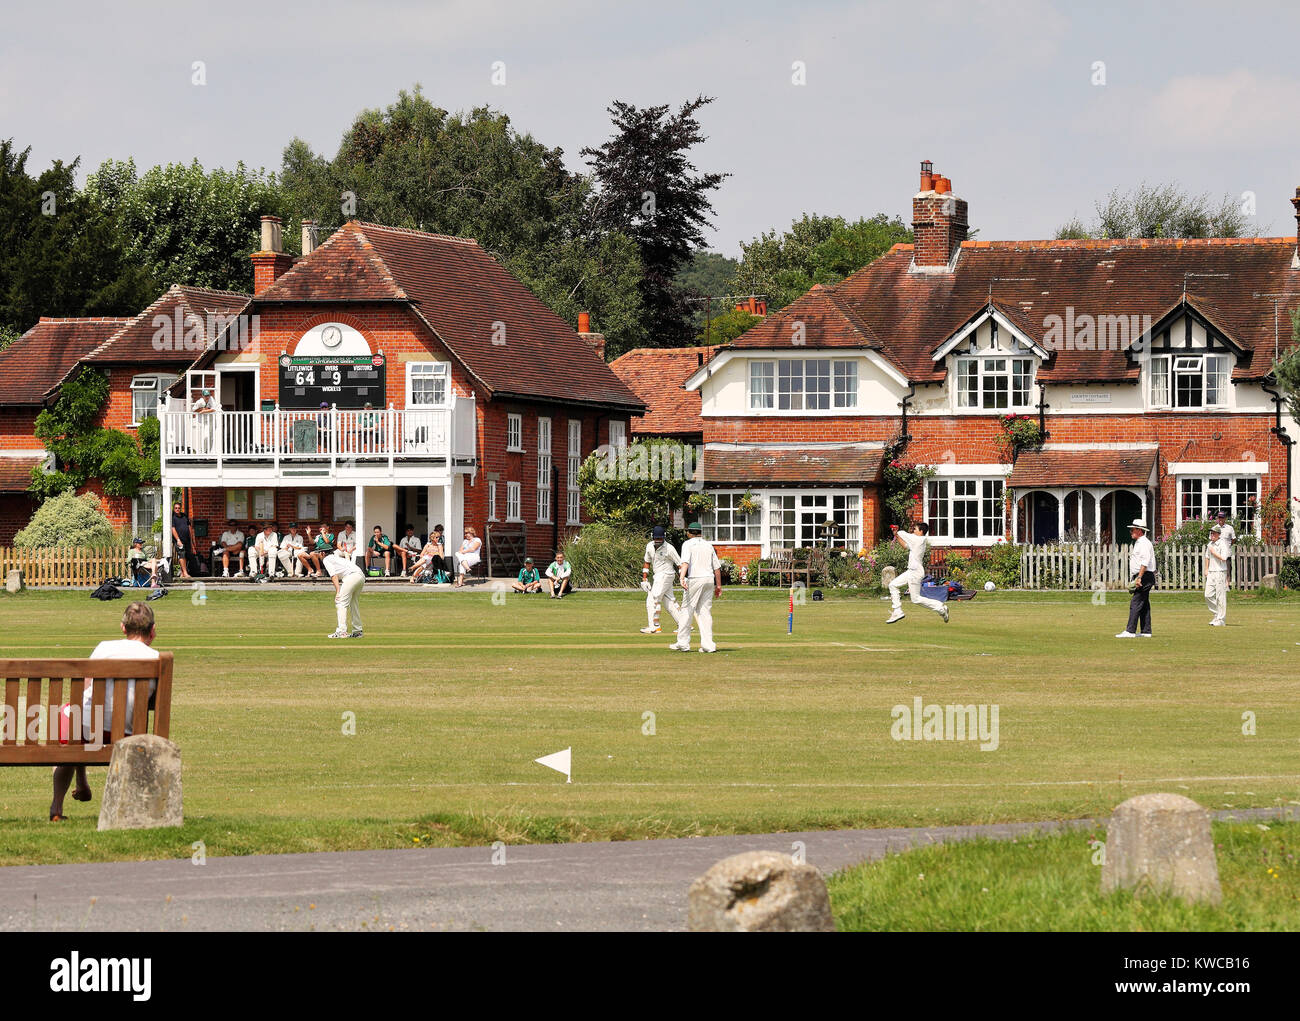 Bowler and fielders in action at an English Cricket match with pavilion and houses around the green - Stock Image